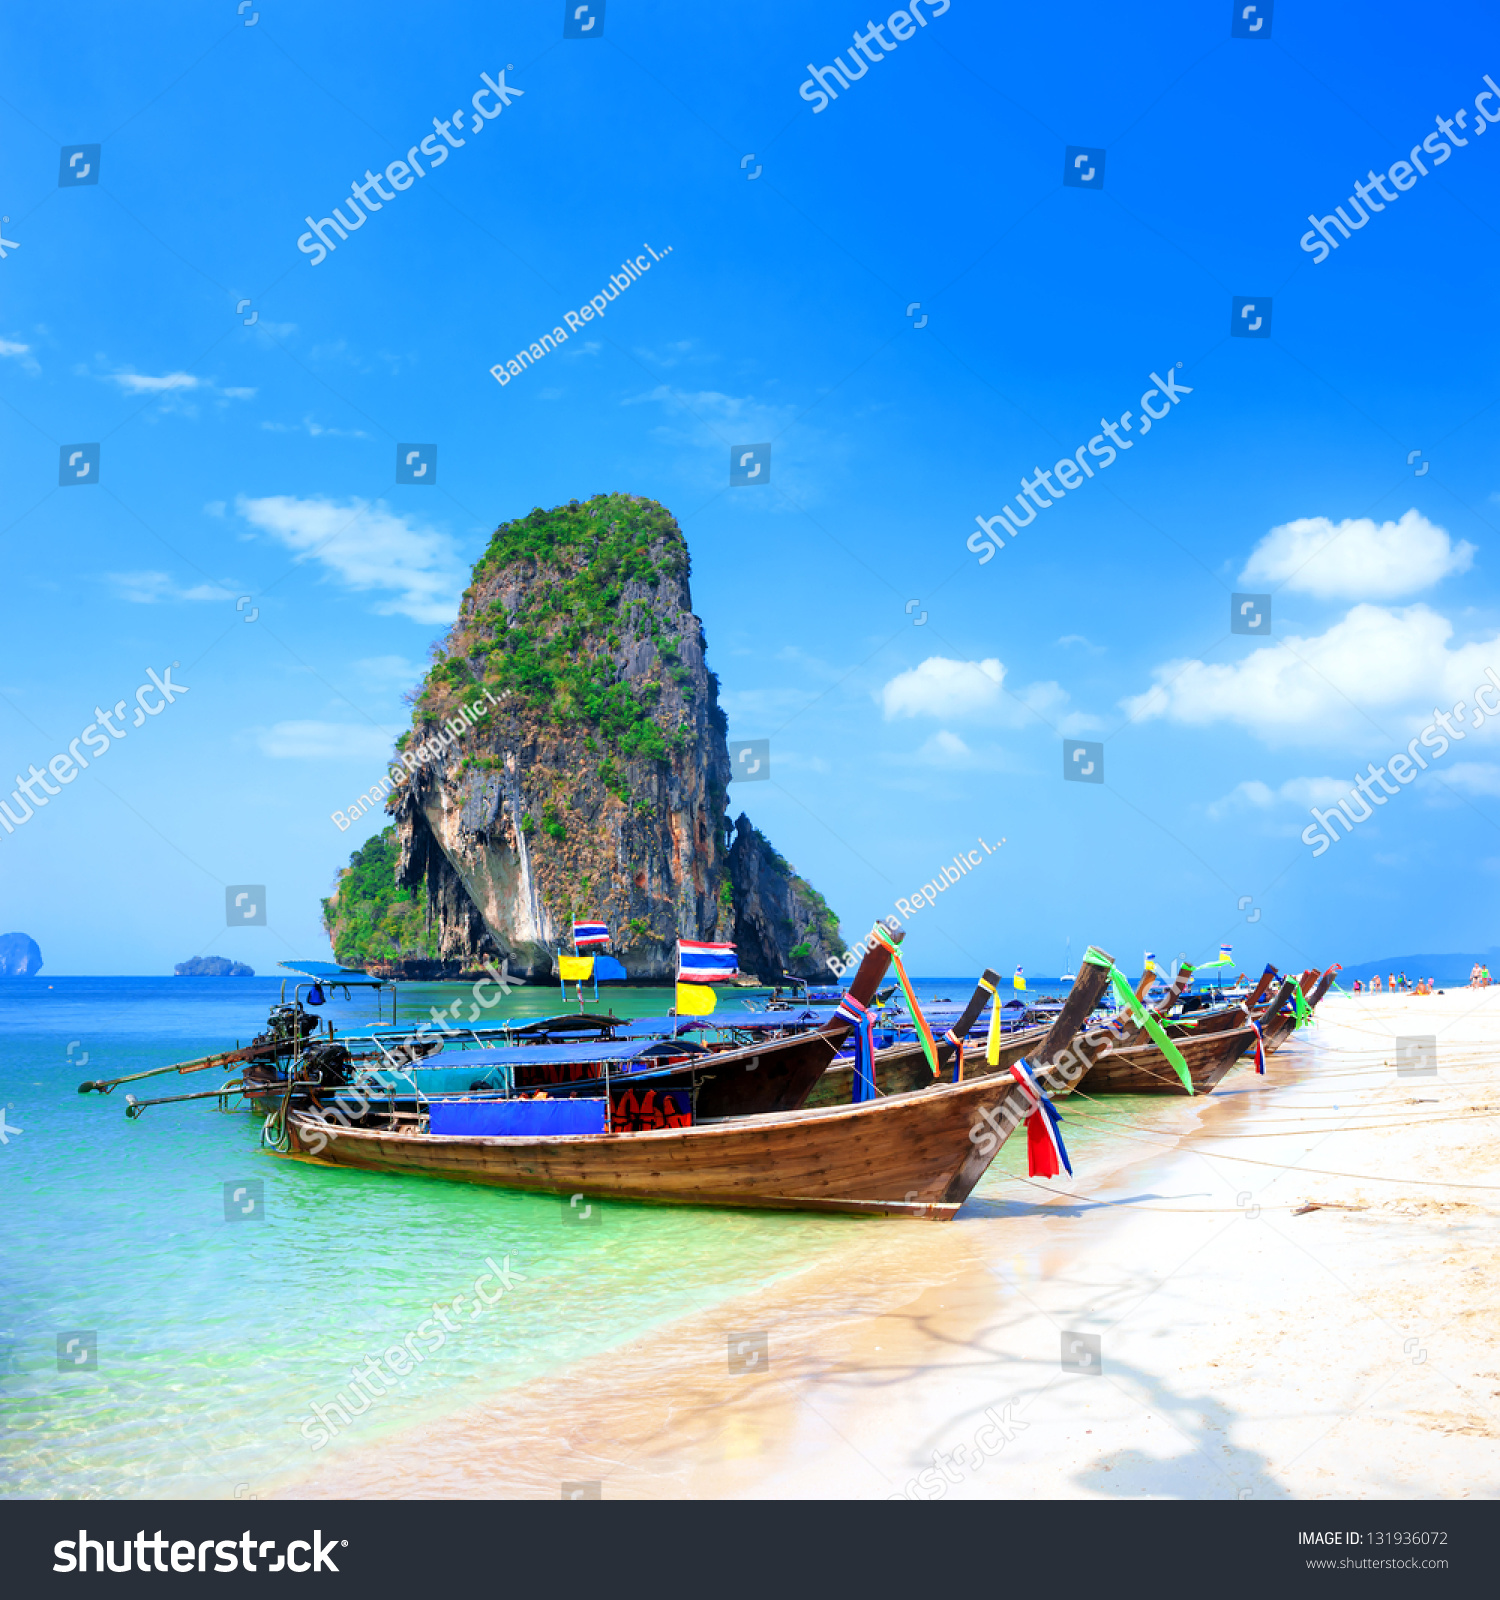 the natural scenery of the journey tourism essay In summary:  its attractions include the natural beauty of rainforests, islands and  beaches as well as the  profits leak back to the north through tour companies,  plane tickets, foreign-owned accommodation and use of non-local supplies.